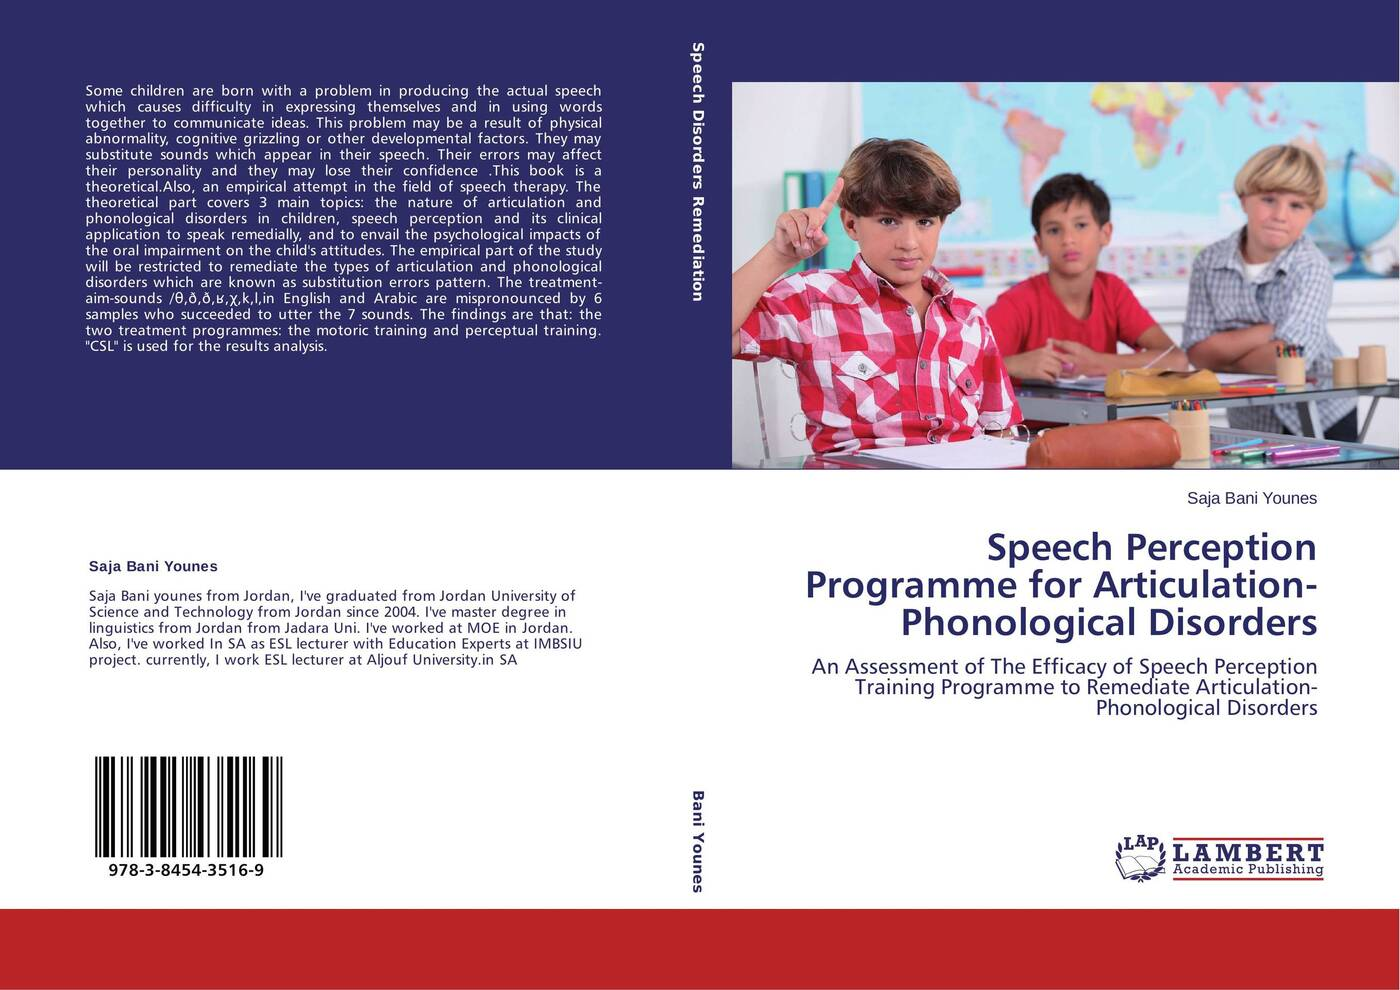 Saja Bani Younes Speech Perception Programme for Articulation-Phonological Disorders